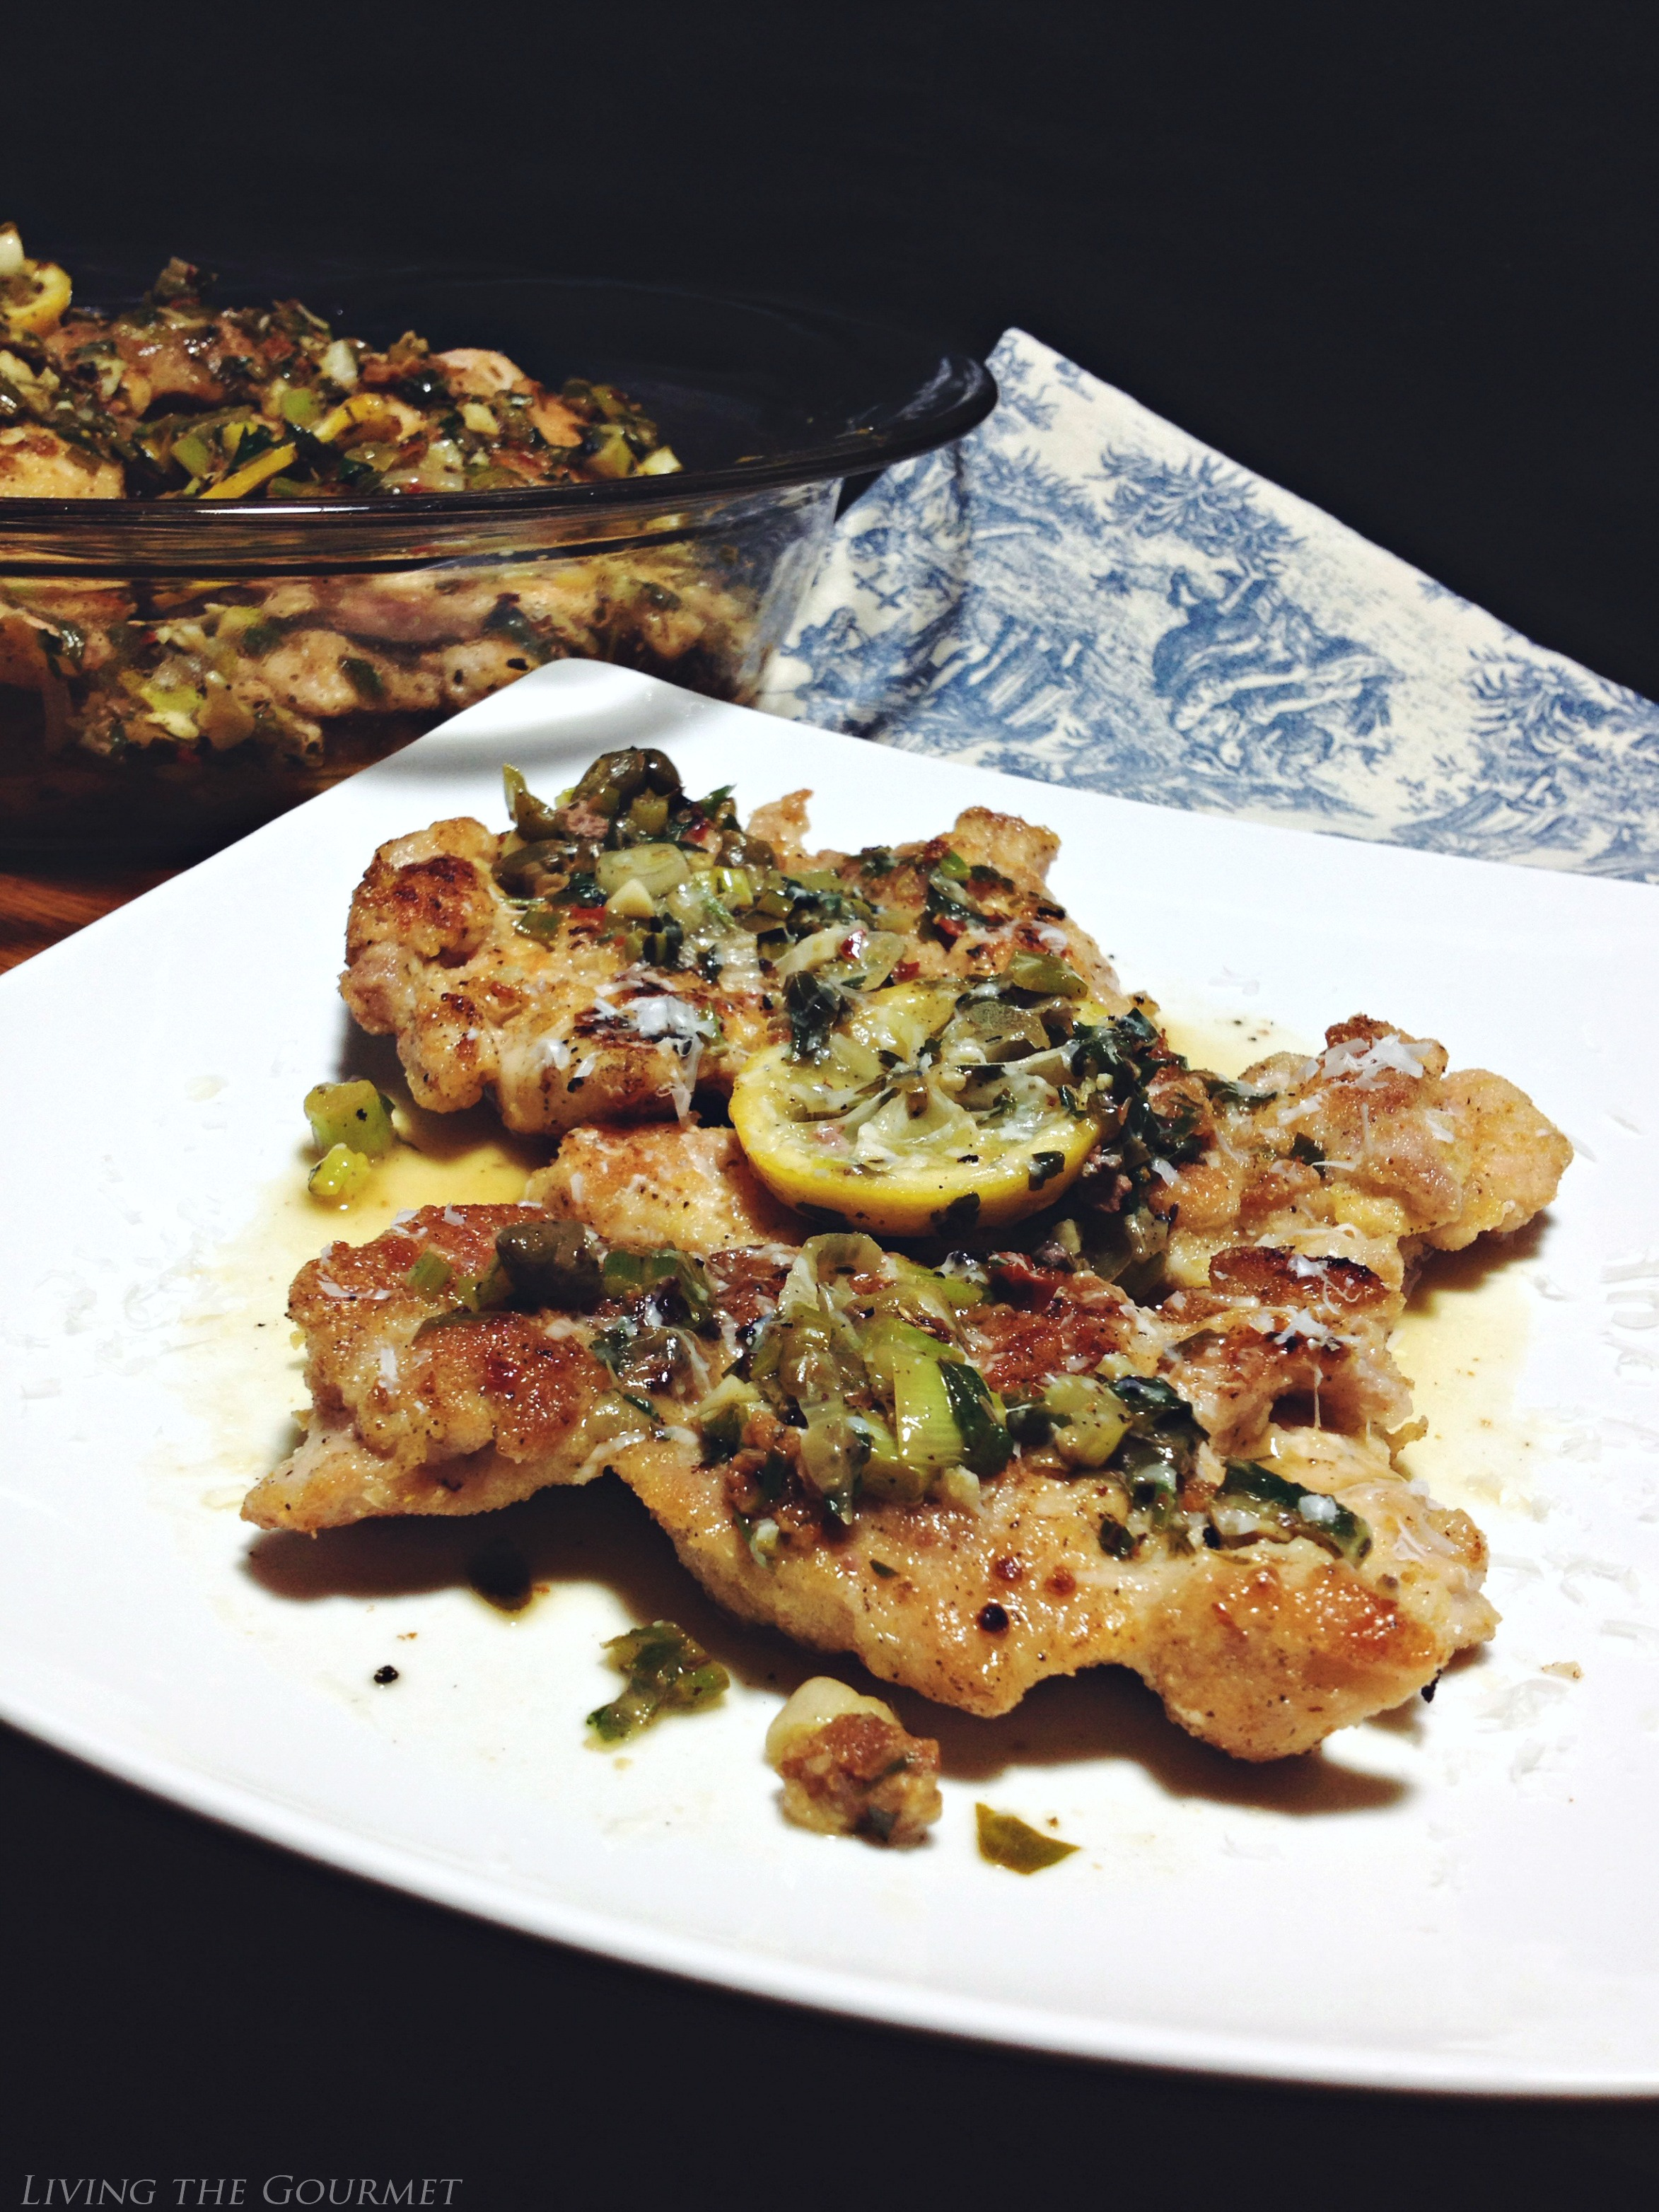 Living the Gourmet: Lemon Chicken Piccata